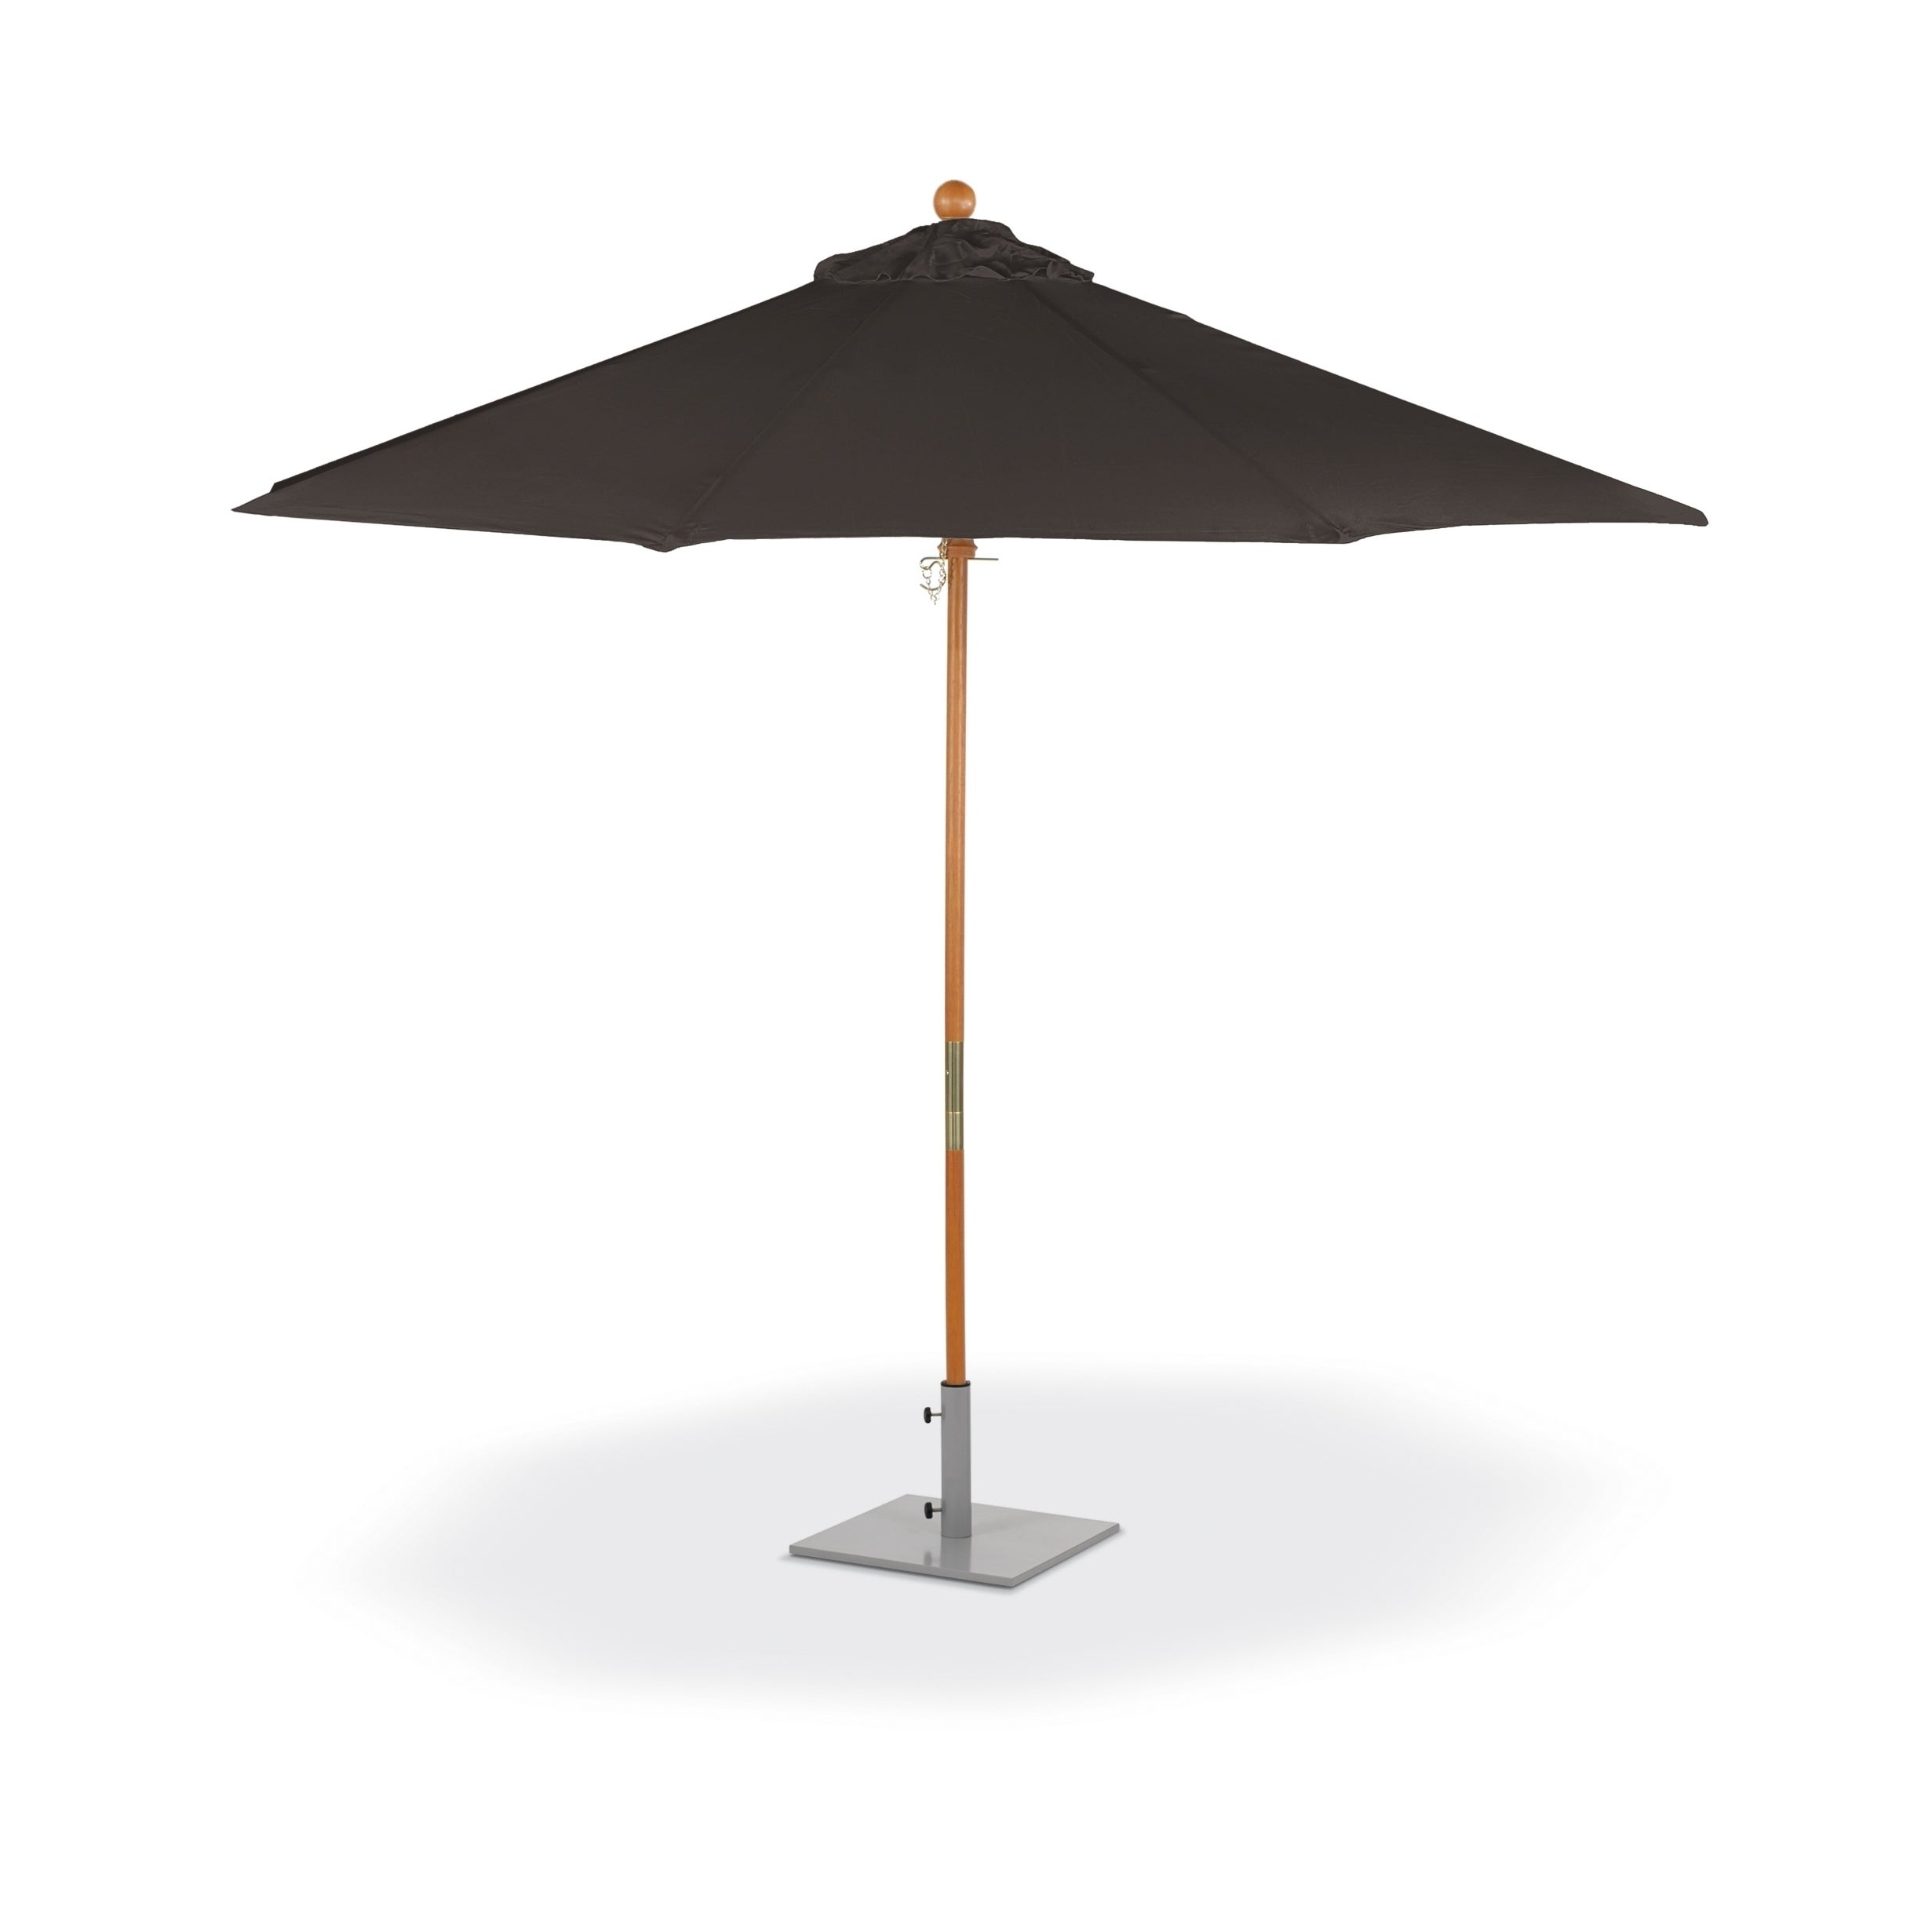 Solid Market Umbrellas Within Most Recently Released Oxford Garden 9 Feet Octagon Black Sunbrella Fabric Shade Market Umbrella  With Solid Tropical Hardwood Frame (View 20 of 20)